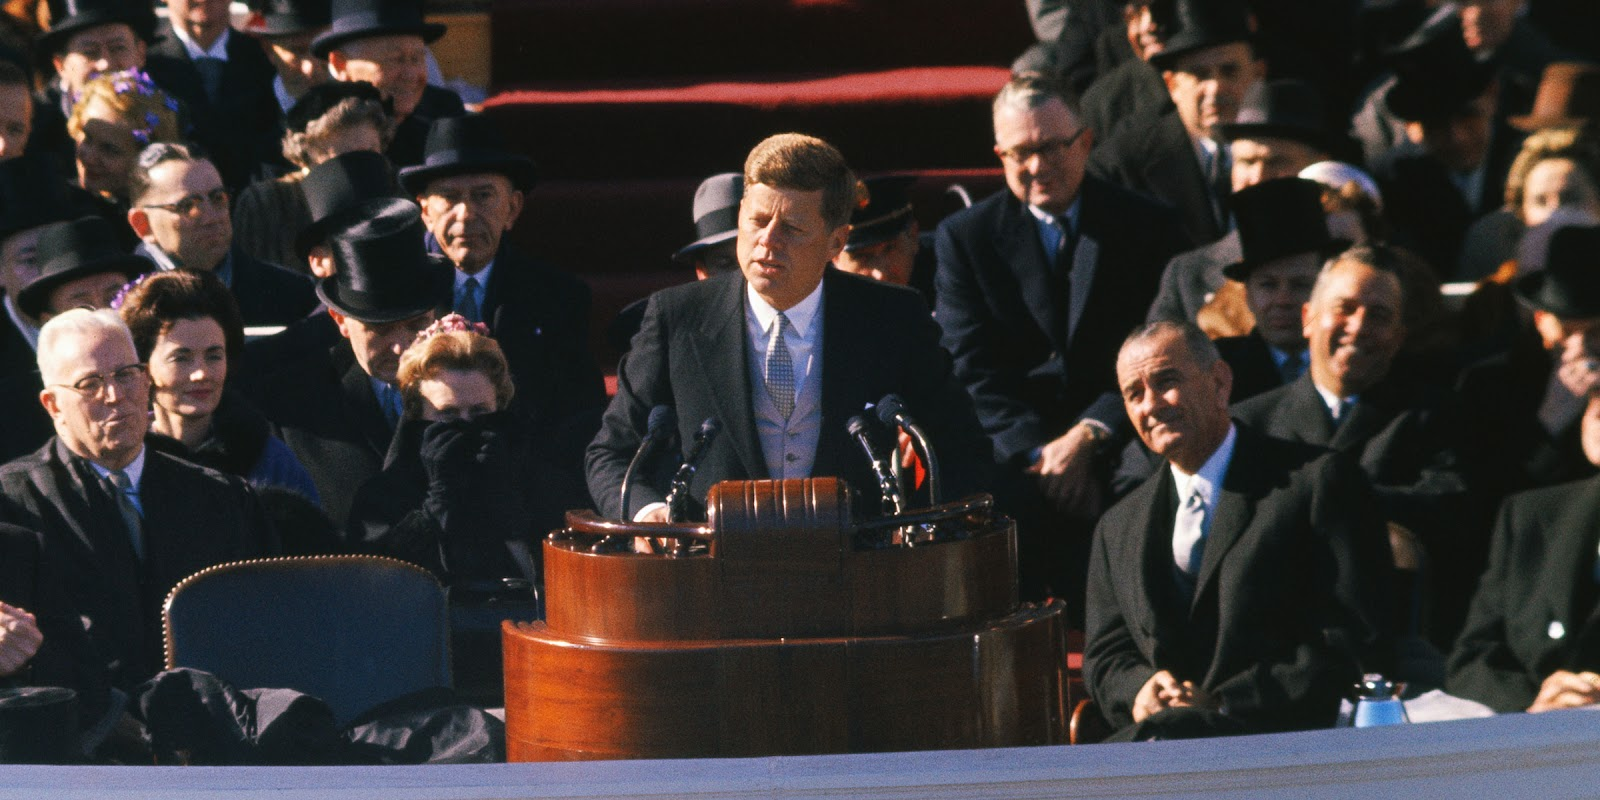 The late President John F. Kennedy delivers his inaugural address.